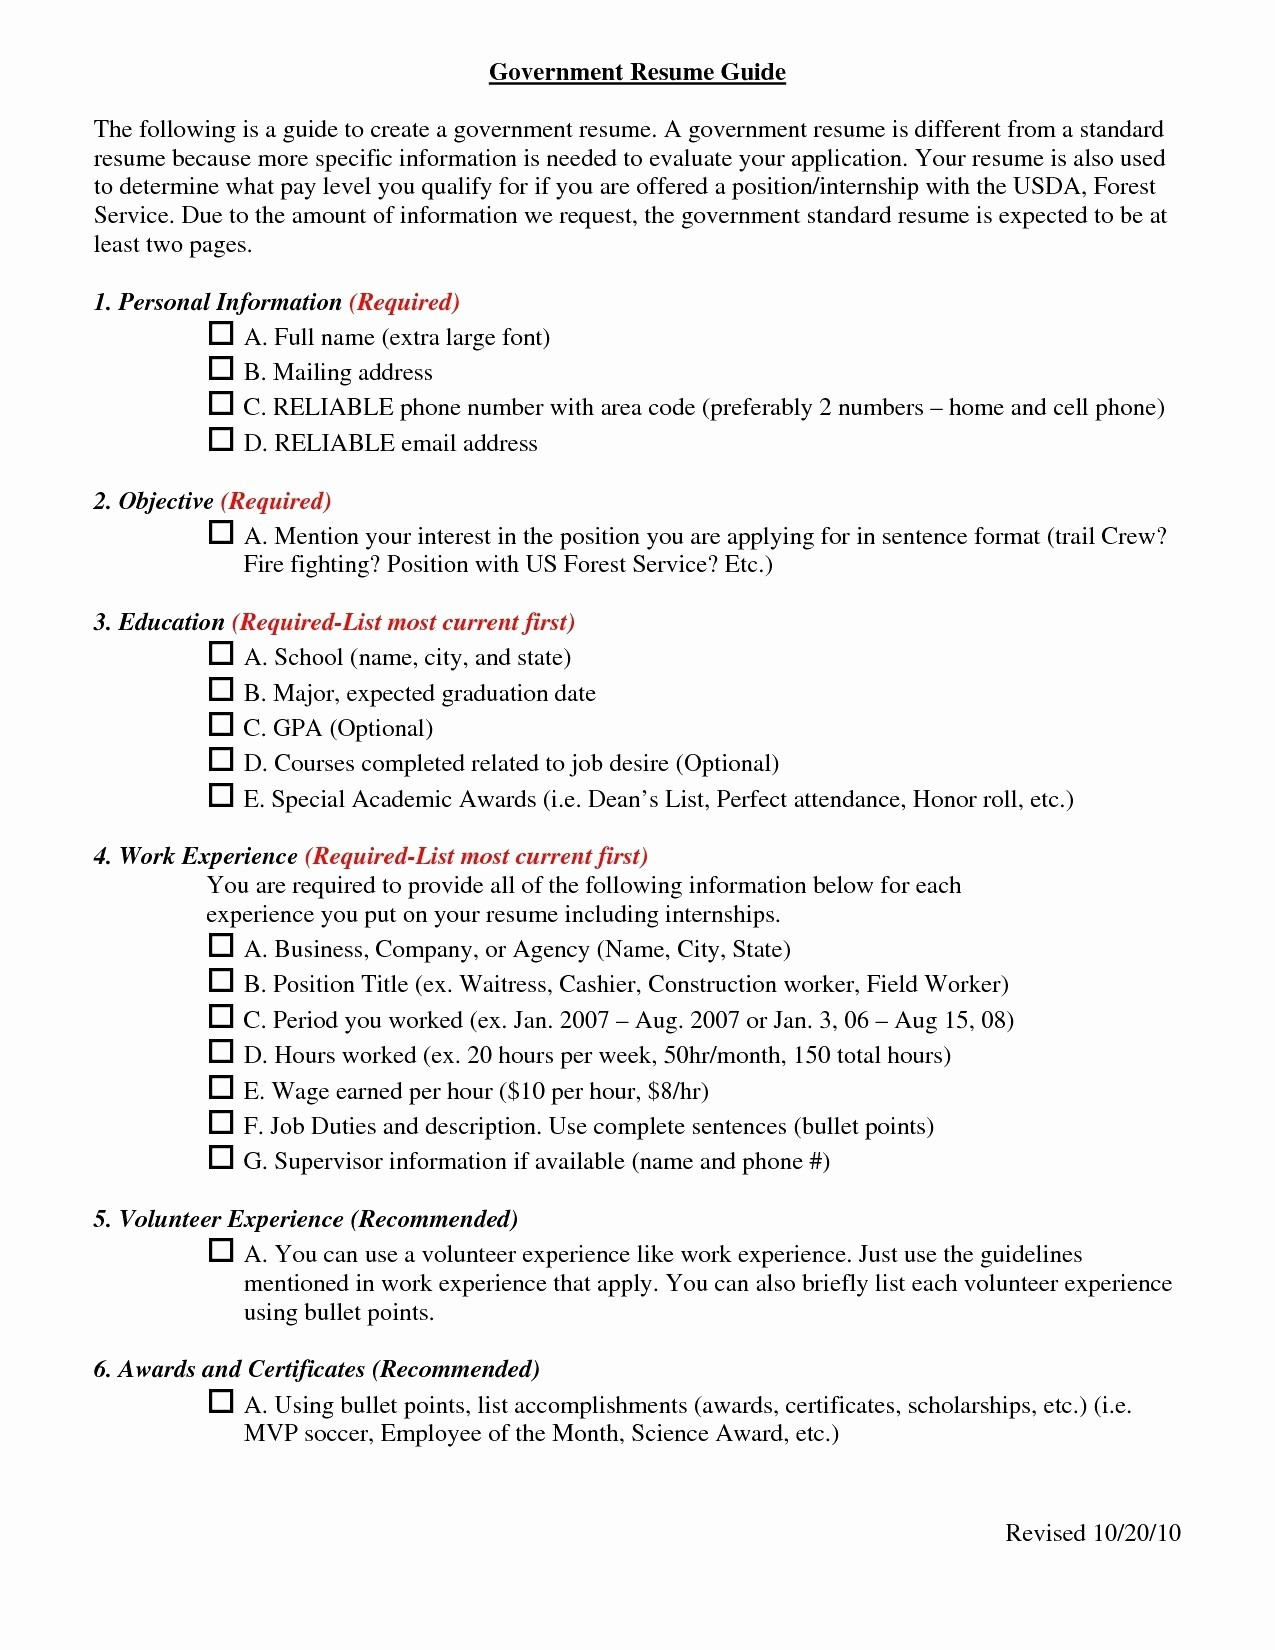 free resume critique example-Free Resume Critique 17 Free Resume Critique 10-l